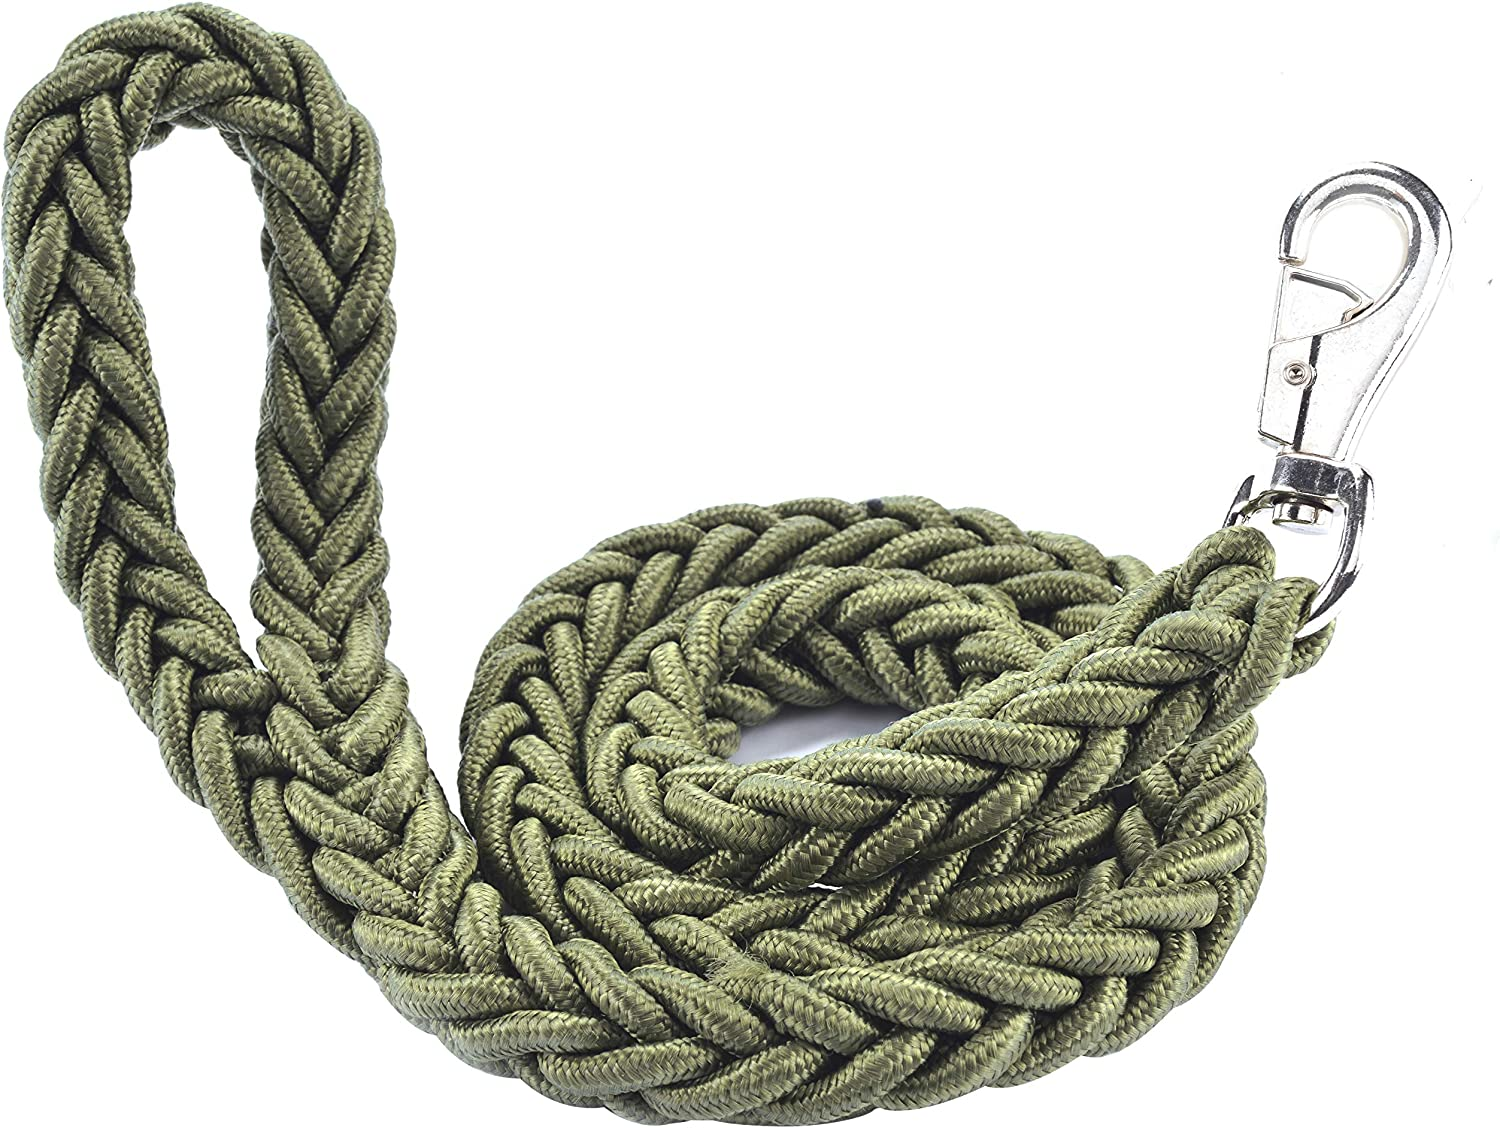 Cdycam Heavy Duty Braided Pet Dog Training Leash,Dog Walking Leads,4ft Thick Durable Dog Rope Leash for Small Medium Large Dogs (Large, Green)